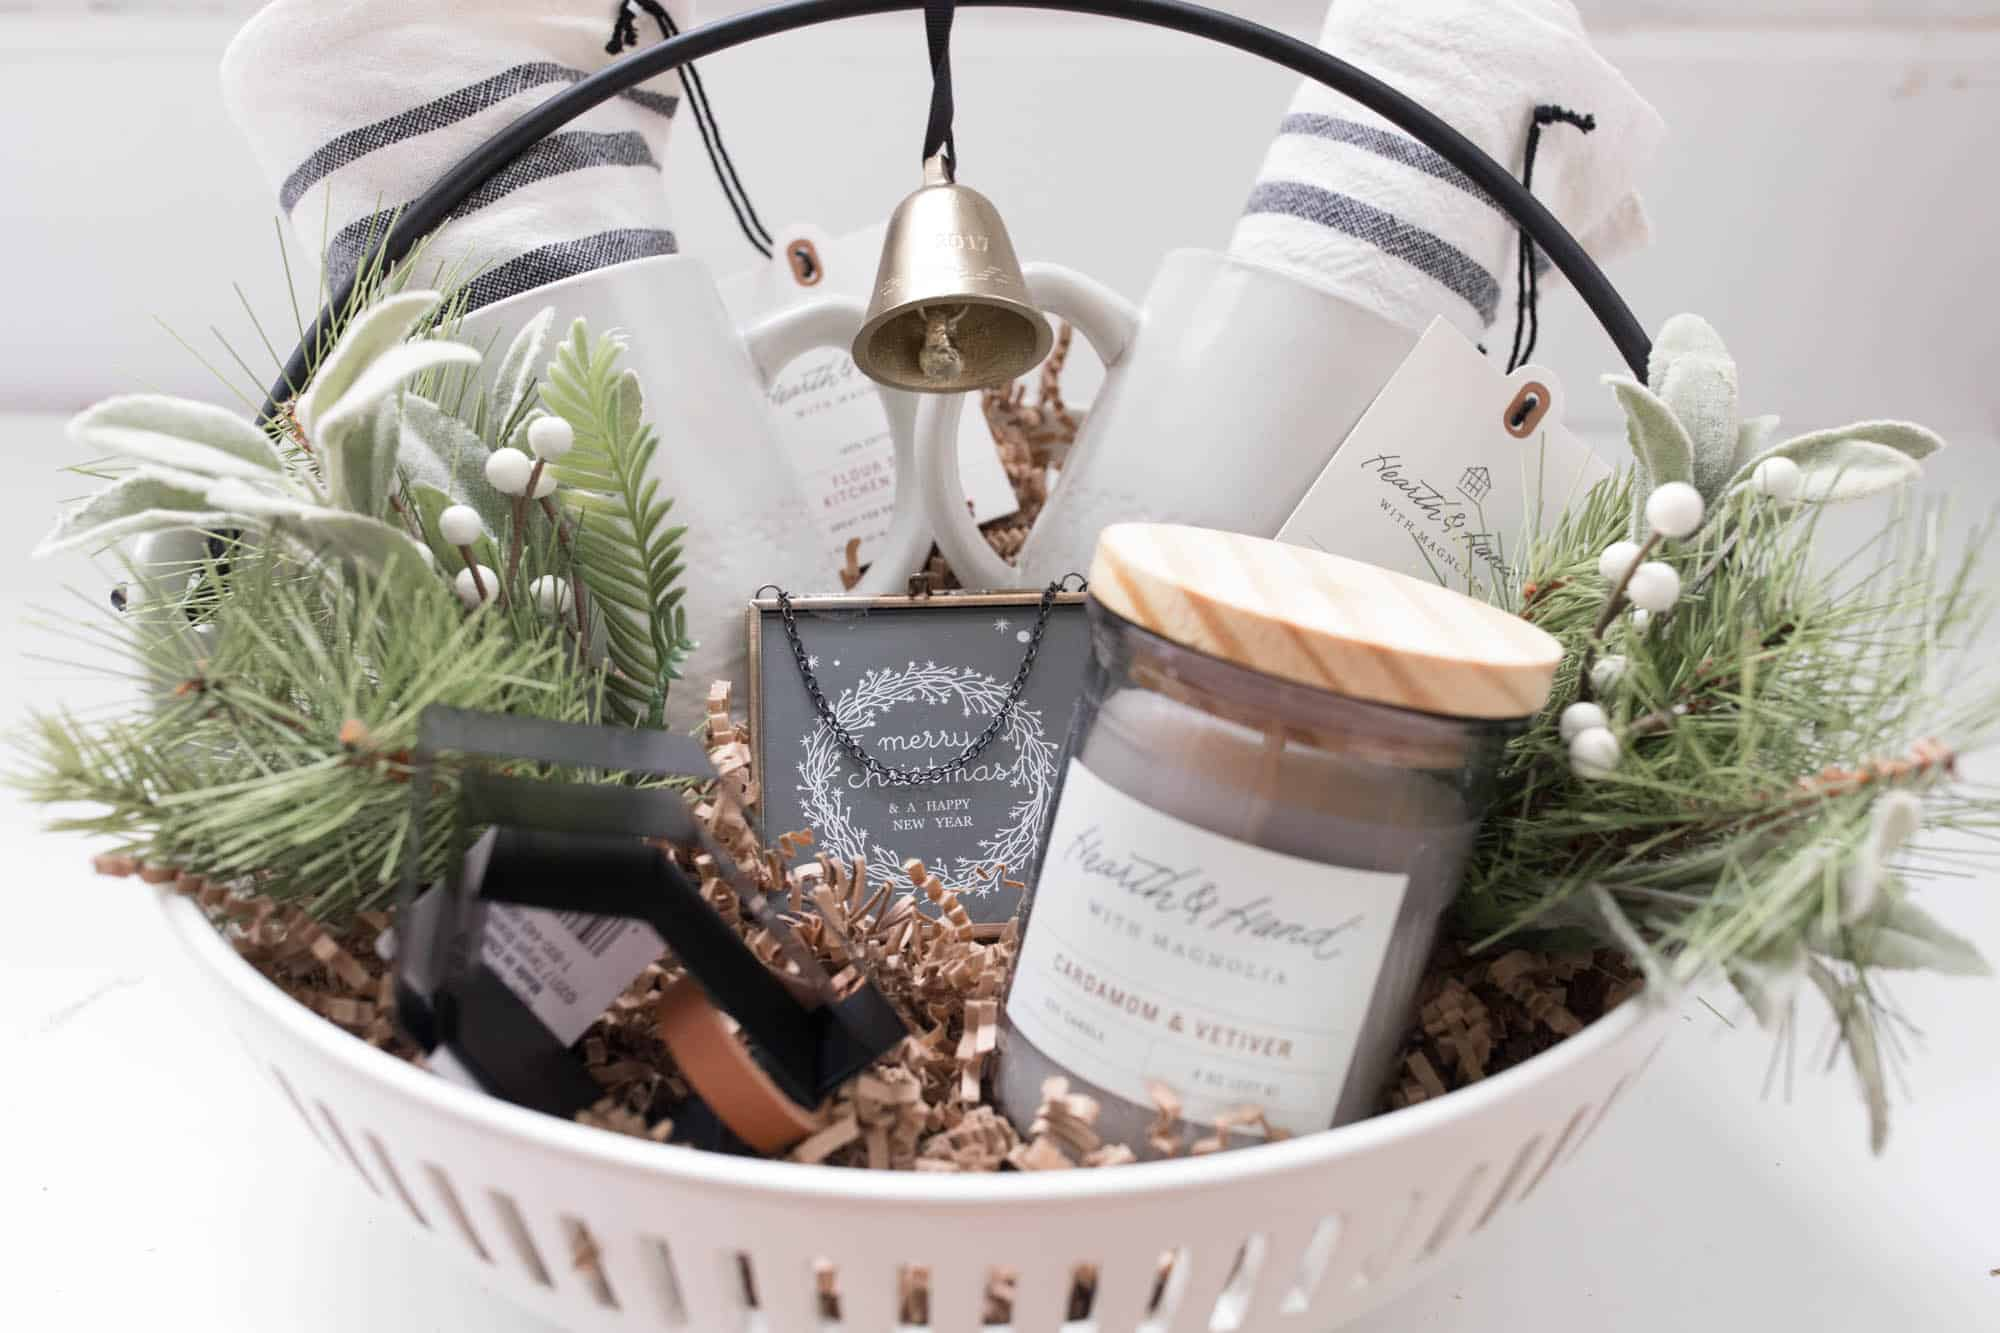 Home Design Gift Ideas: Hearth And Hand Gift Basket- Gift Guide For The Farmhouse